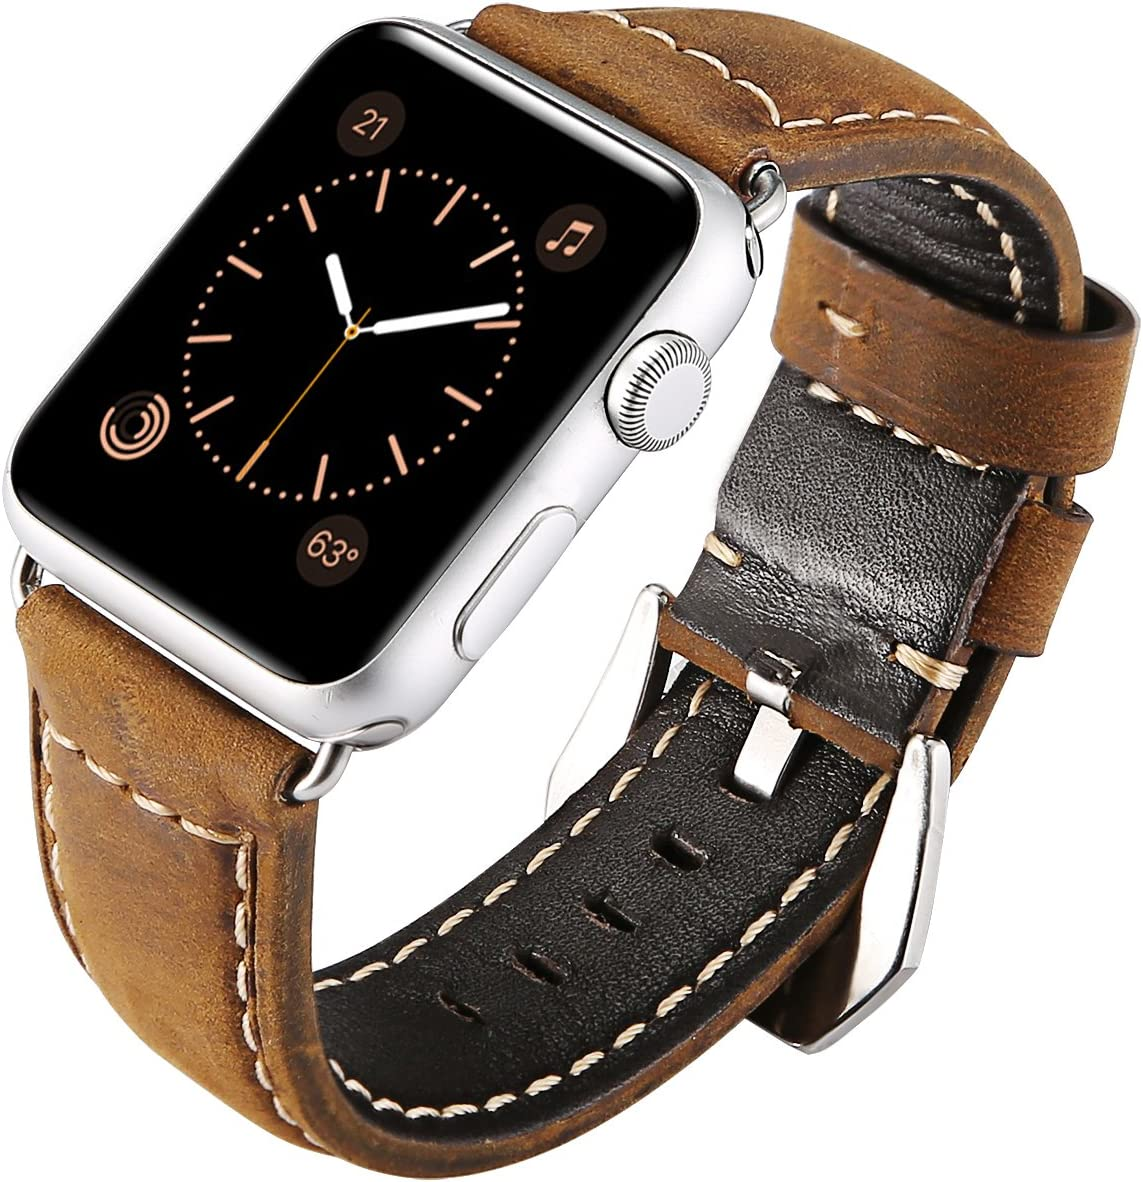 Maxjoy Compatible with Apple Watch Band, 42mm 44mm Watch Bands Leather Strap Replacement Bracelet Wristband with Metal Clasp Adapter Compatible with Apple iWatch Series 4 3 2 1 Sport Edition, Brown